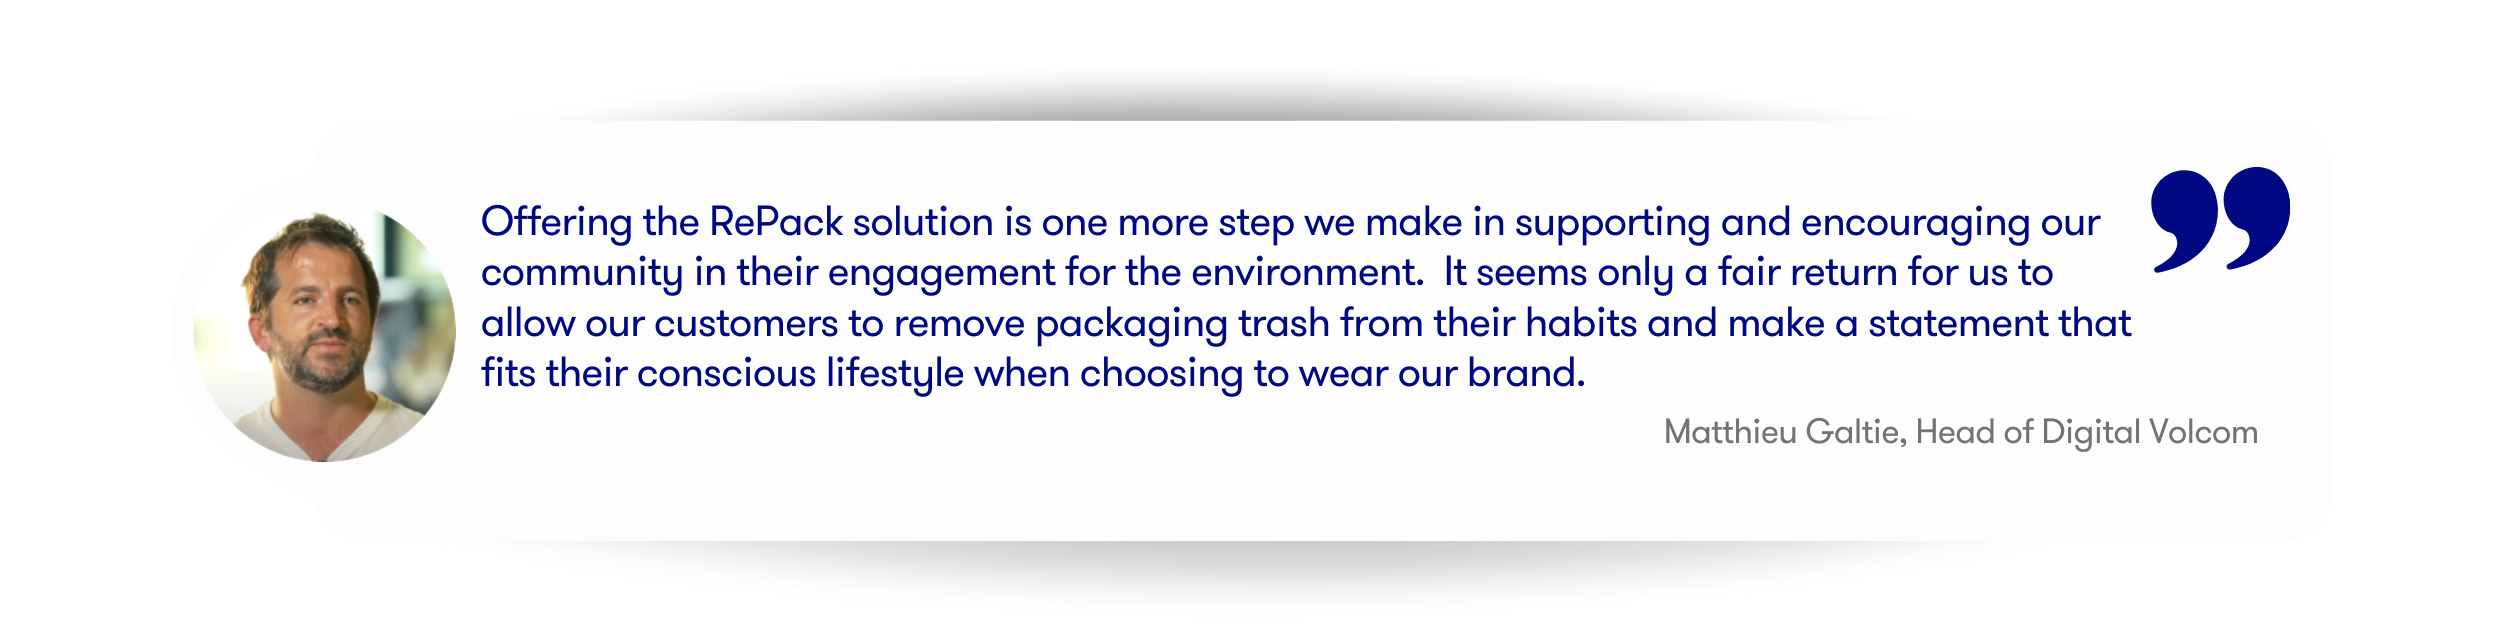 Volcom quote about the RePack experience